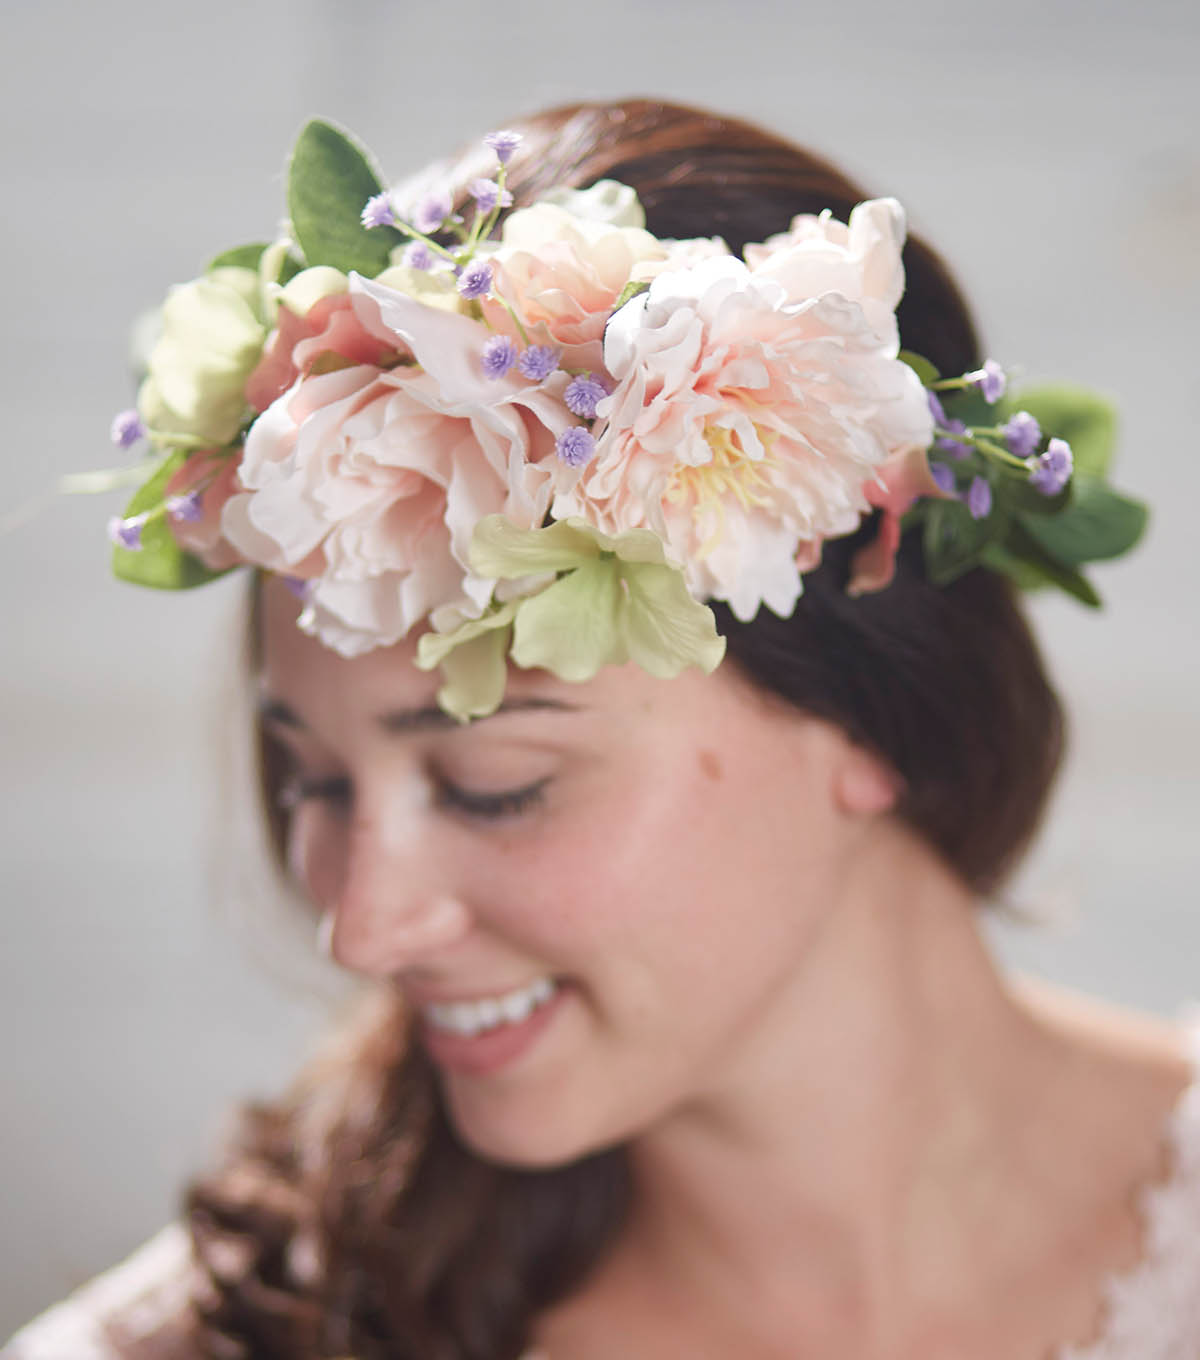 How to make a long leaf flower bunch garland crown joann how to make a long leaf flower bunch garland crown izmirmasajfo